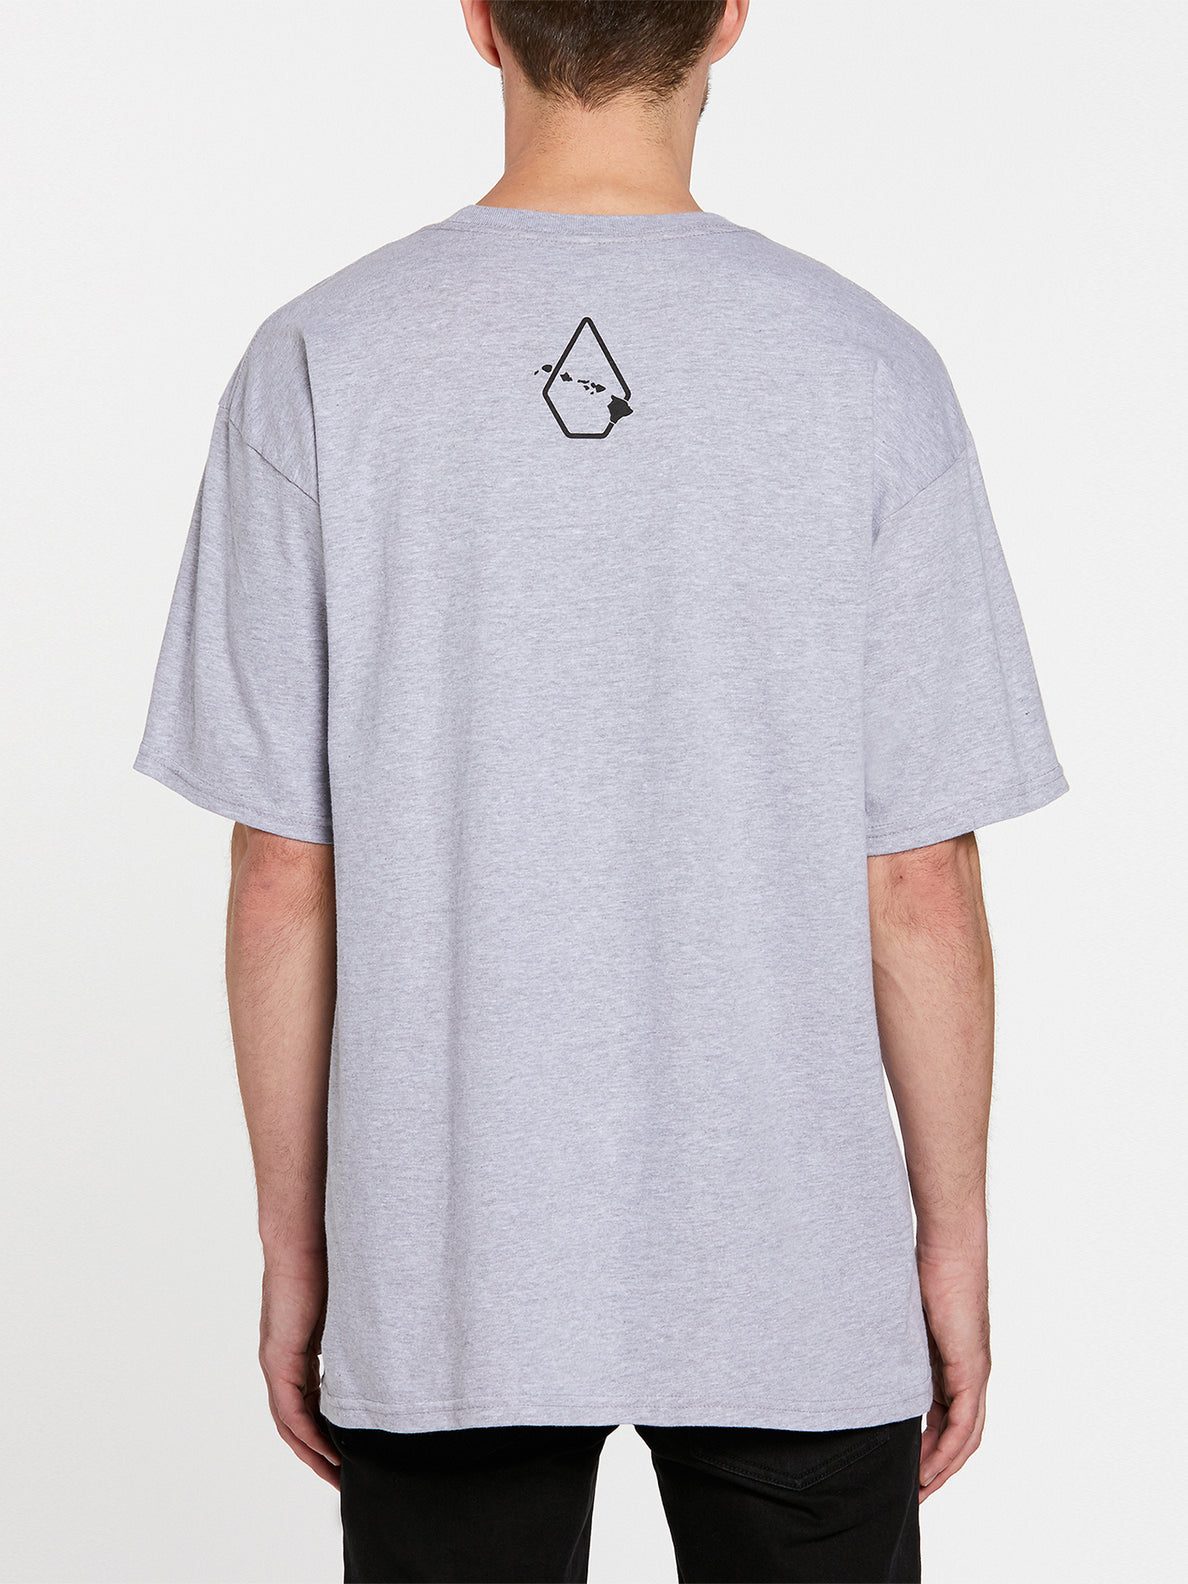 True Short Sleeve Tee - Heather Grey